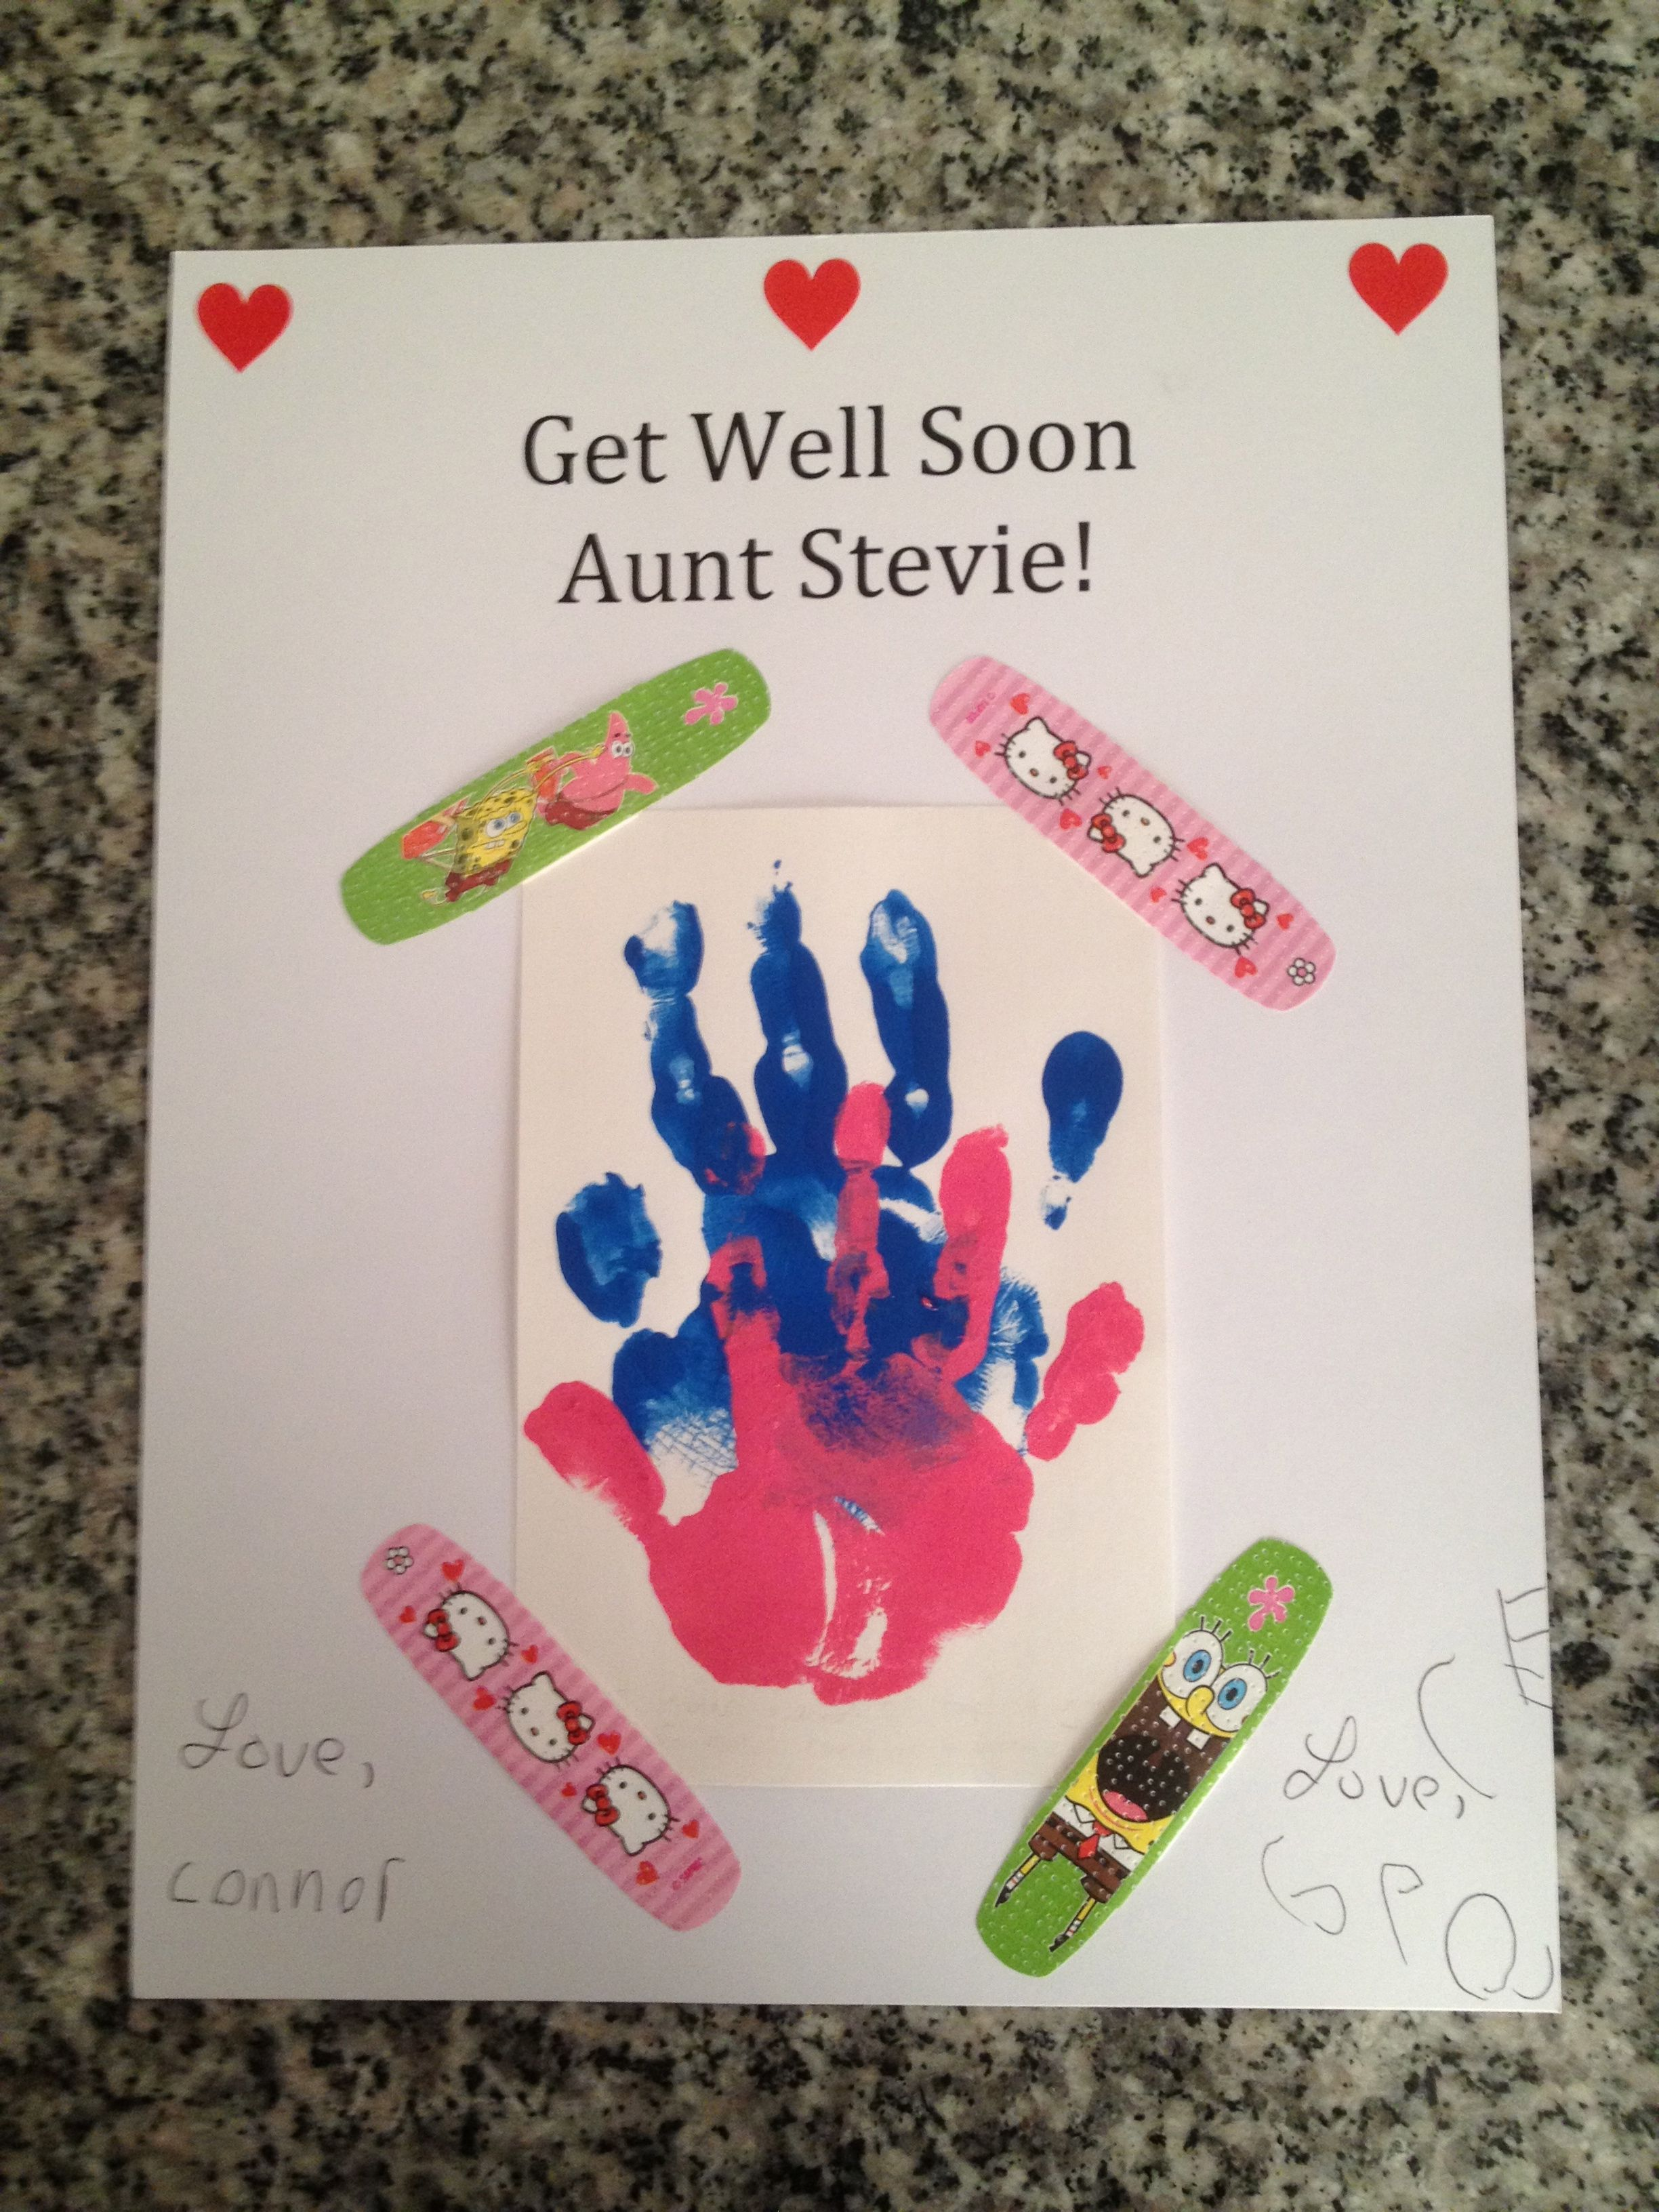 Awesome Get Well Soon Card Ideas For Children To Make Part - 2: Get Well Handprint Card With Band Aids